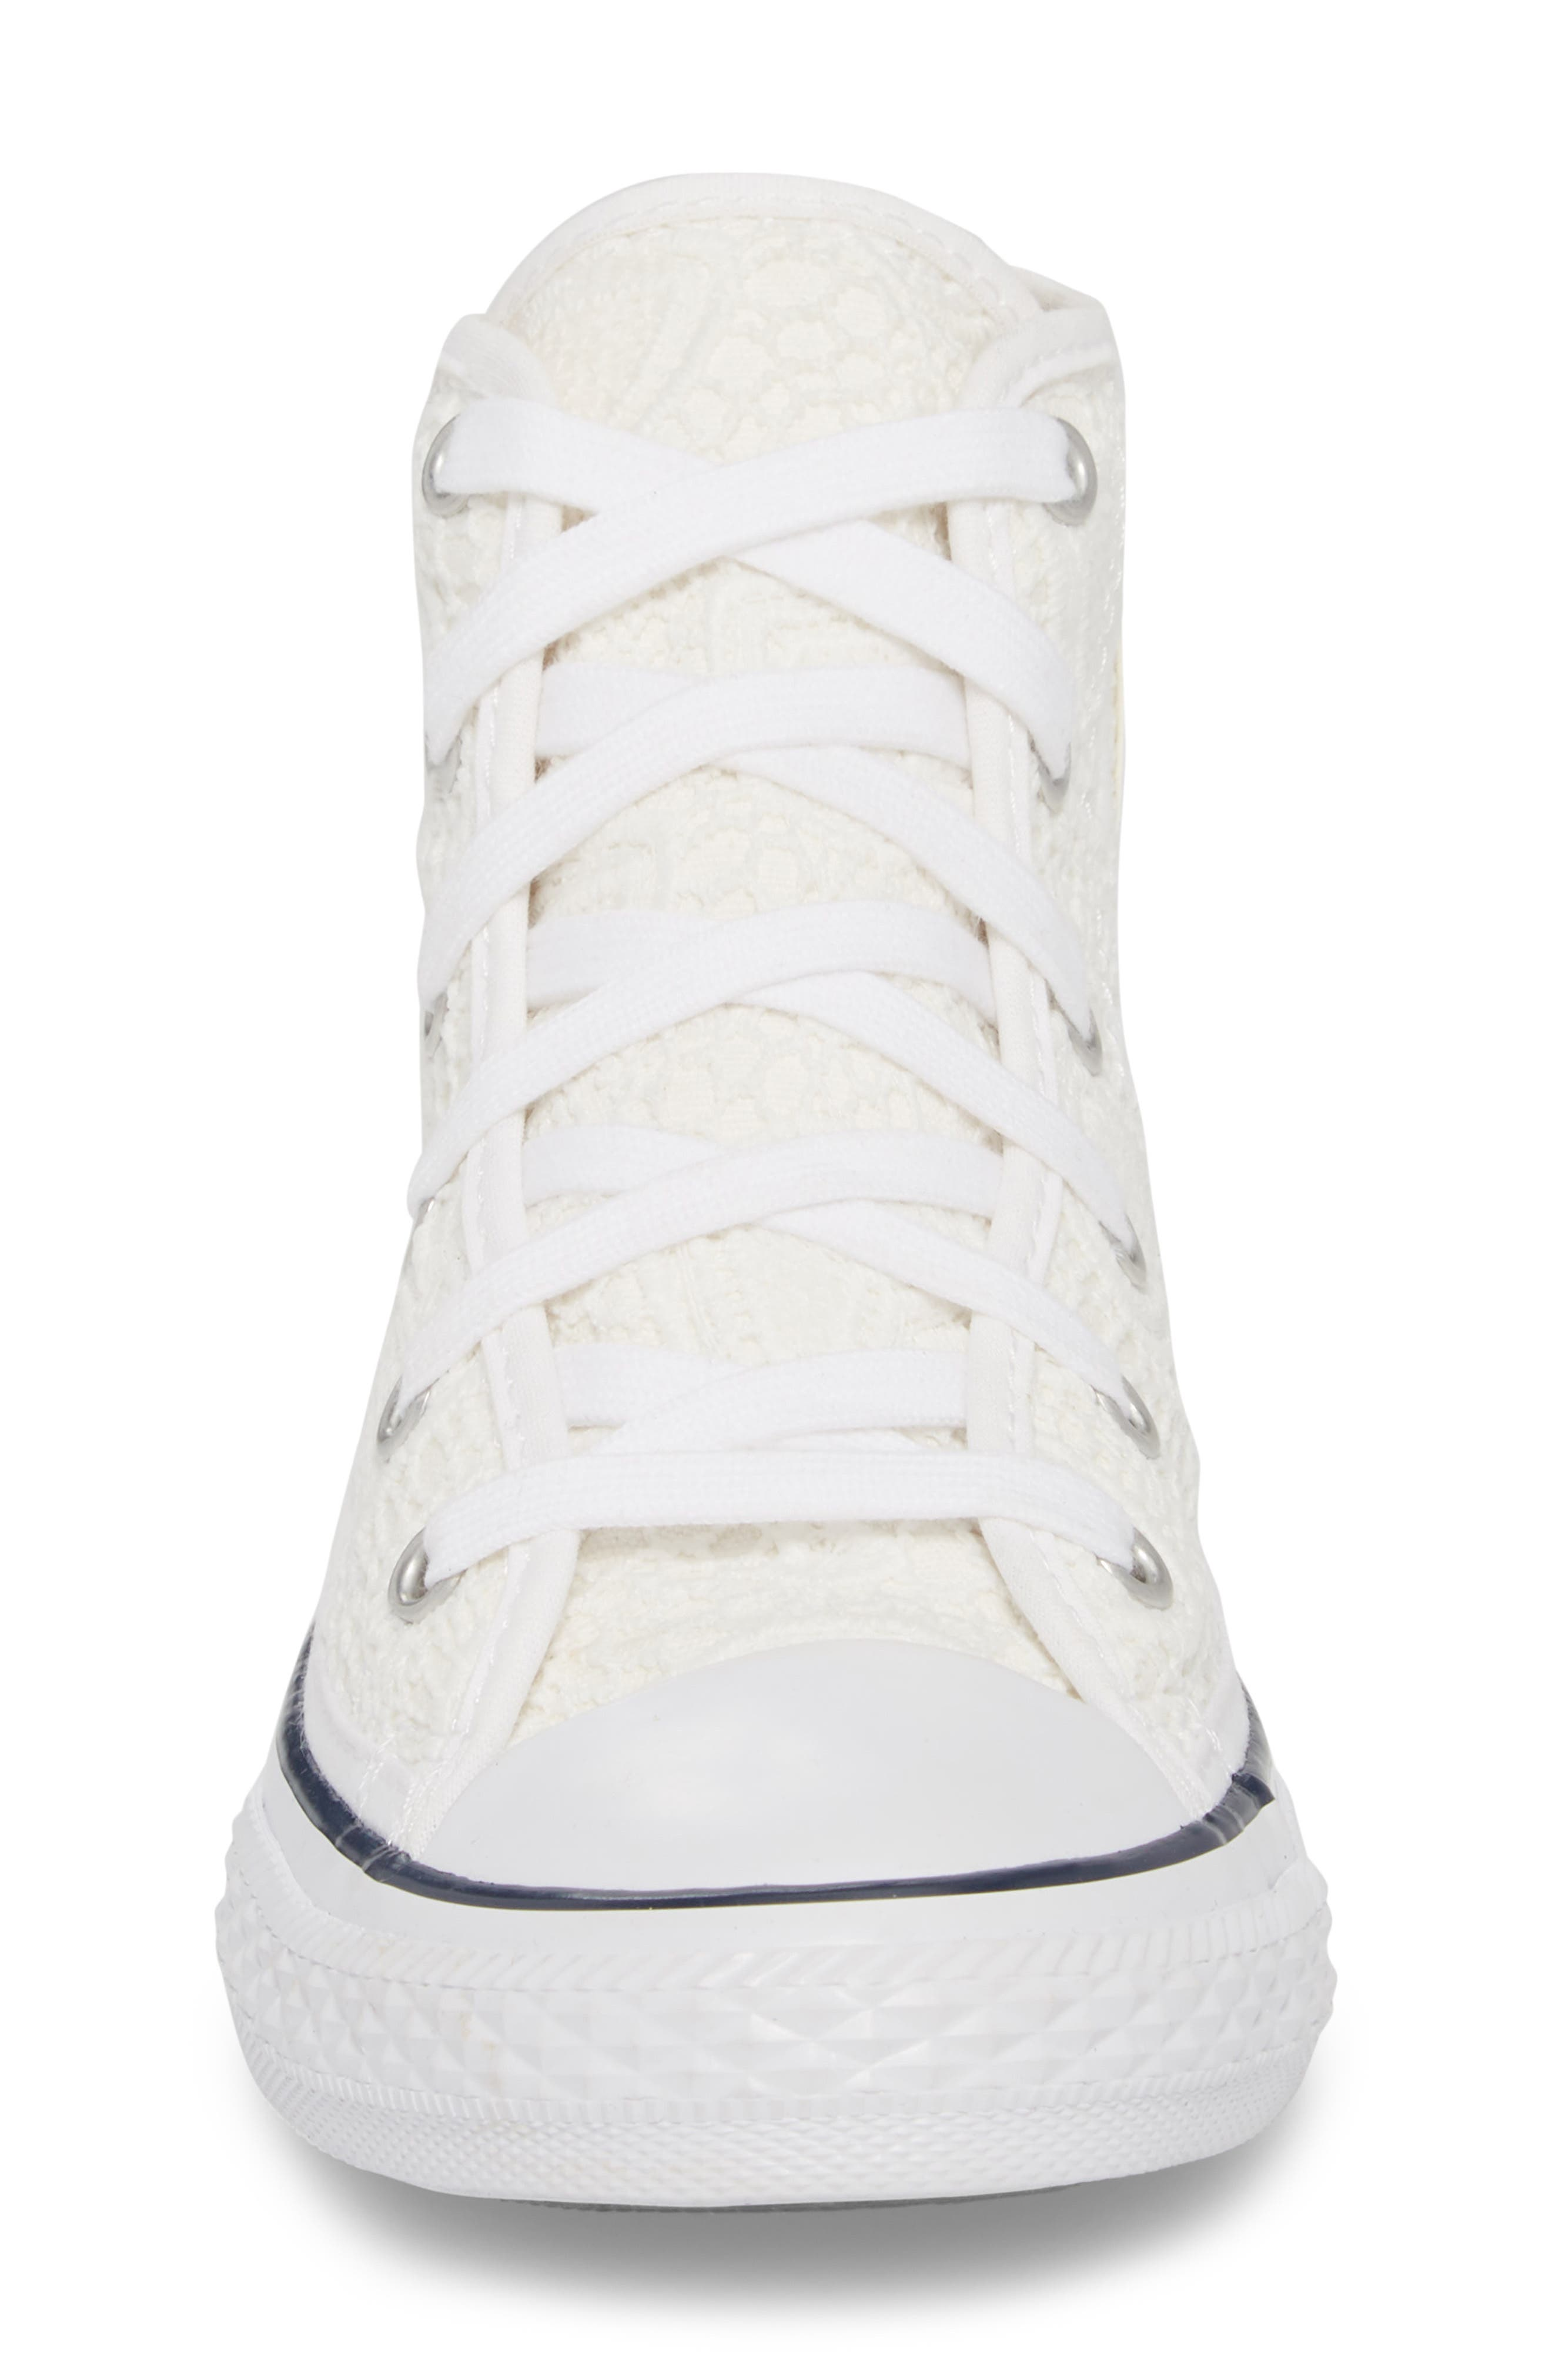 Chuck Taylor<sup>®</sup> All Star<sup>®</sup> Crochet High Top Sneaker,                             Alternate thumbnail 4, color,                             102